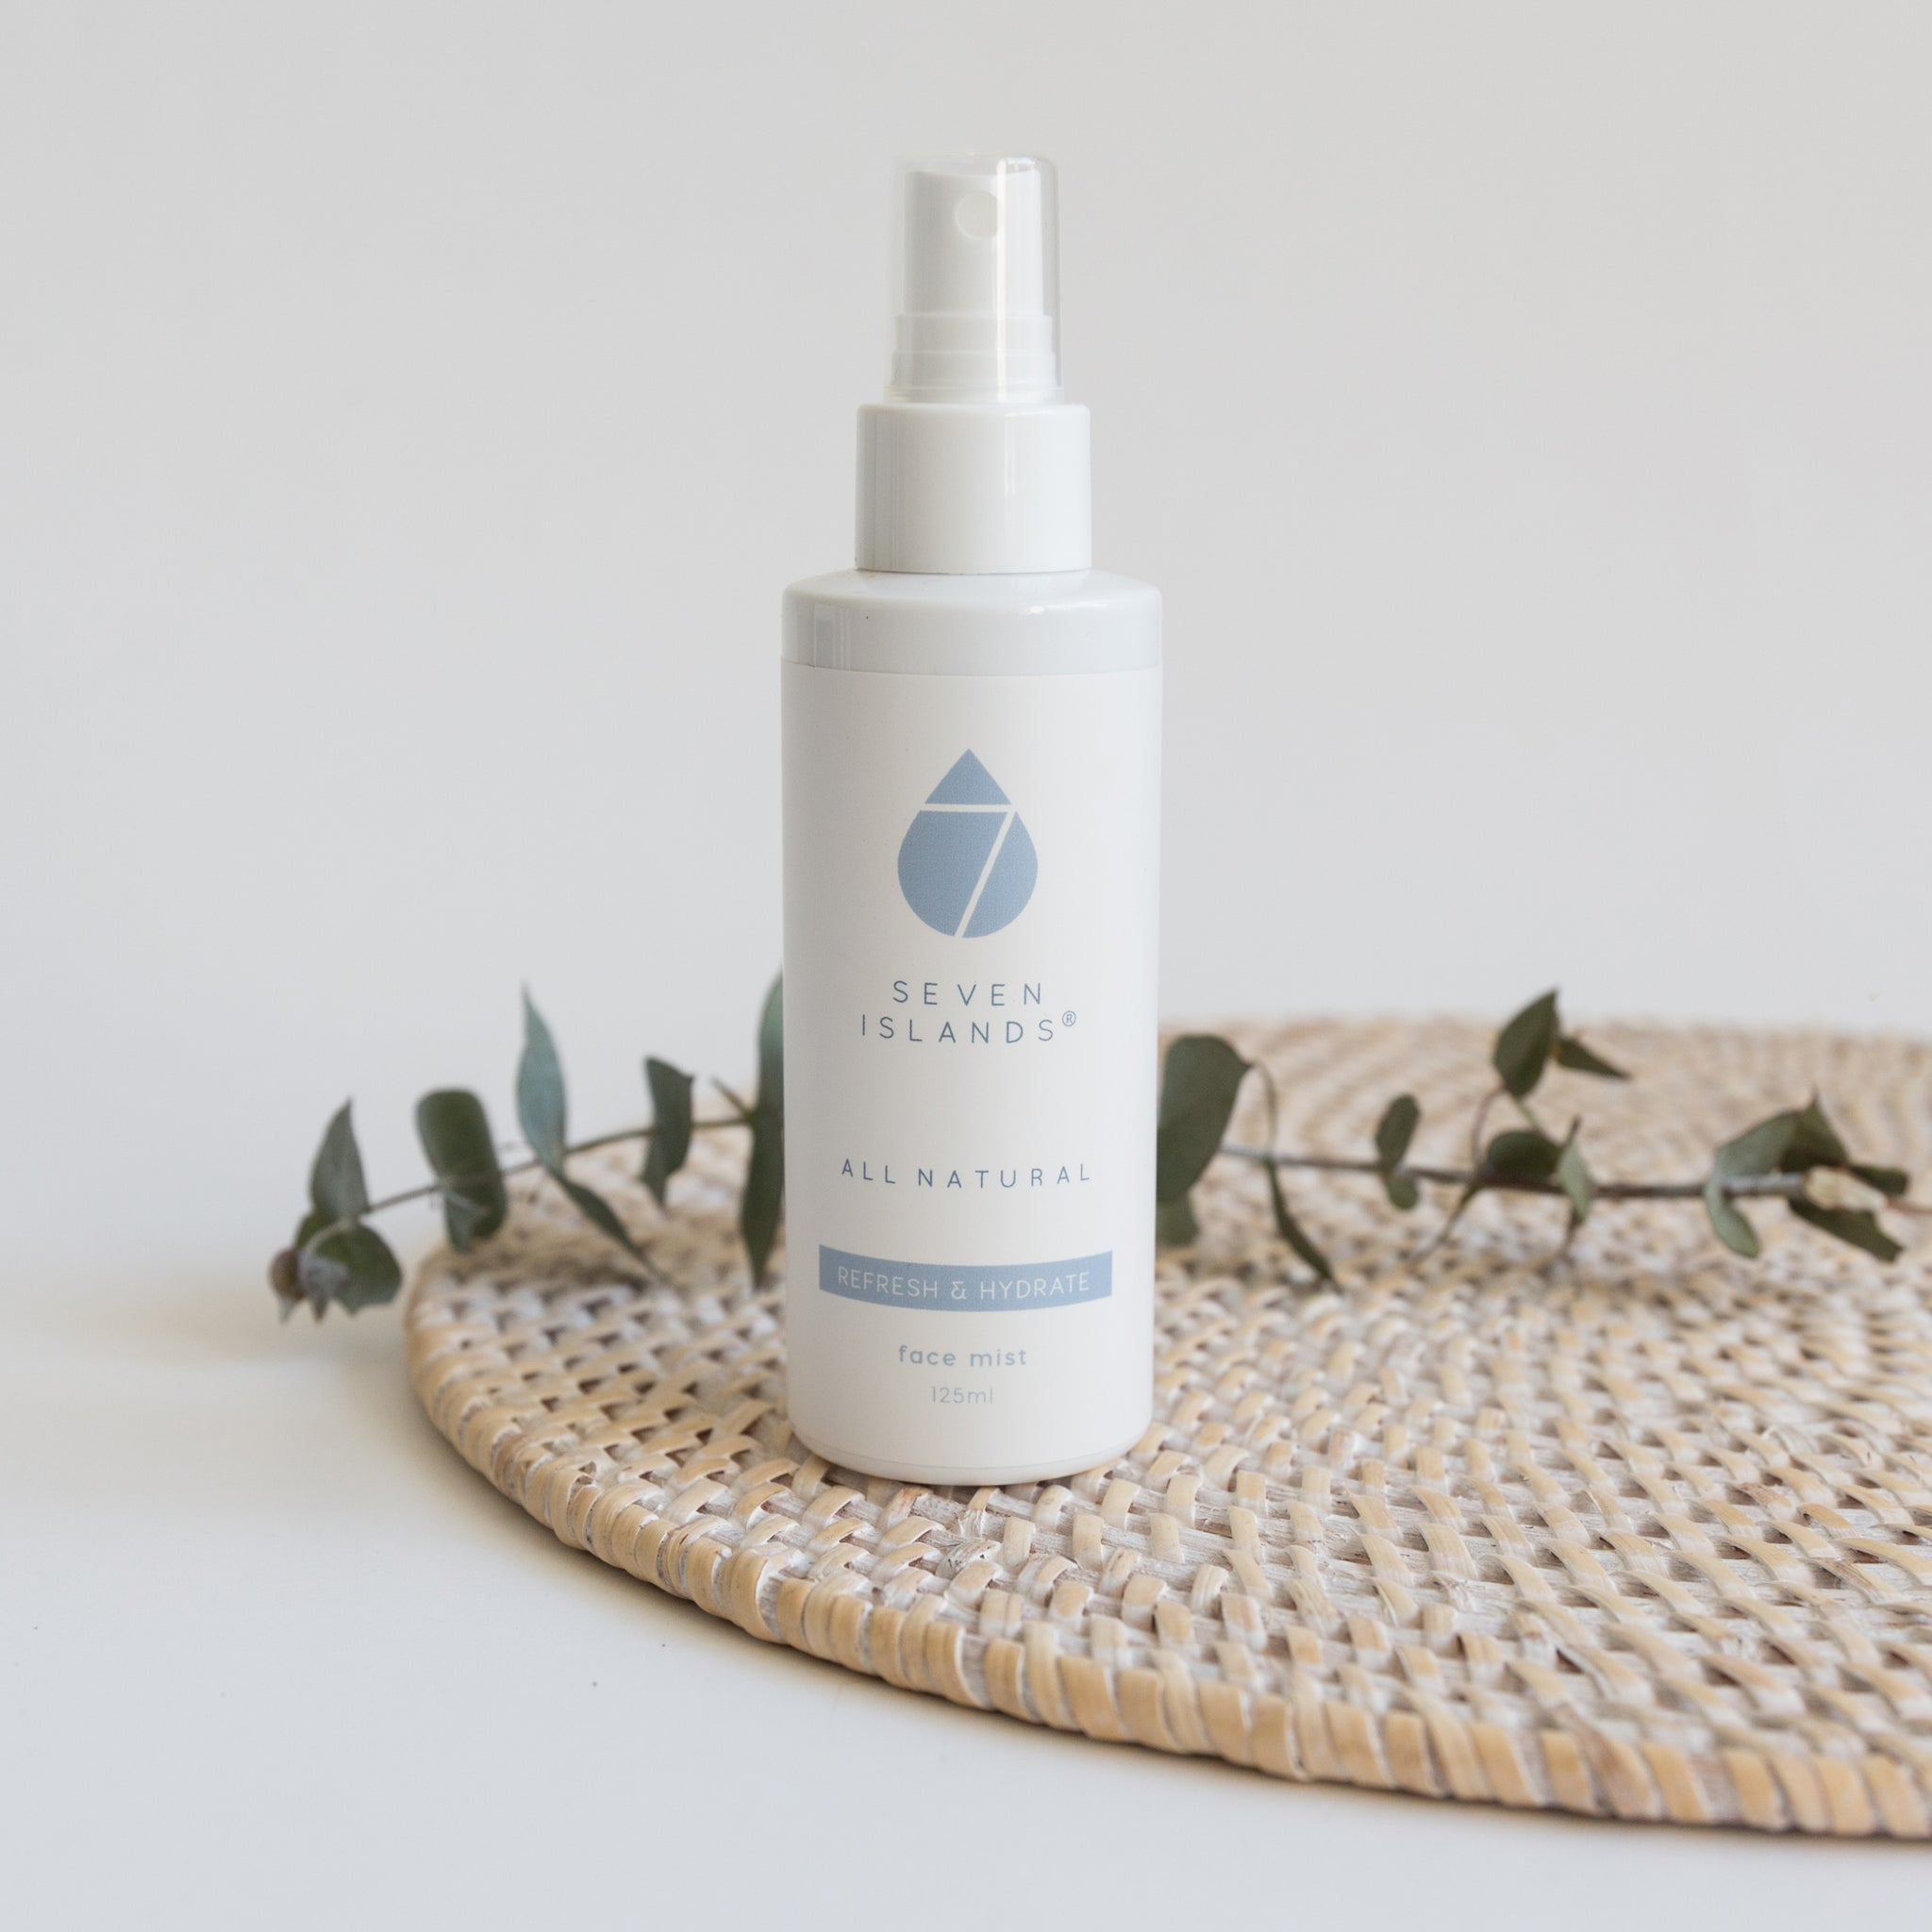 Face Mist - Refresh and Hydrate